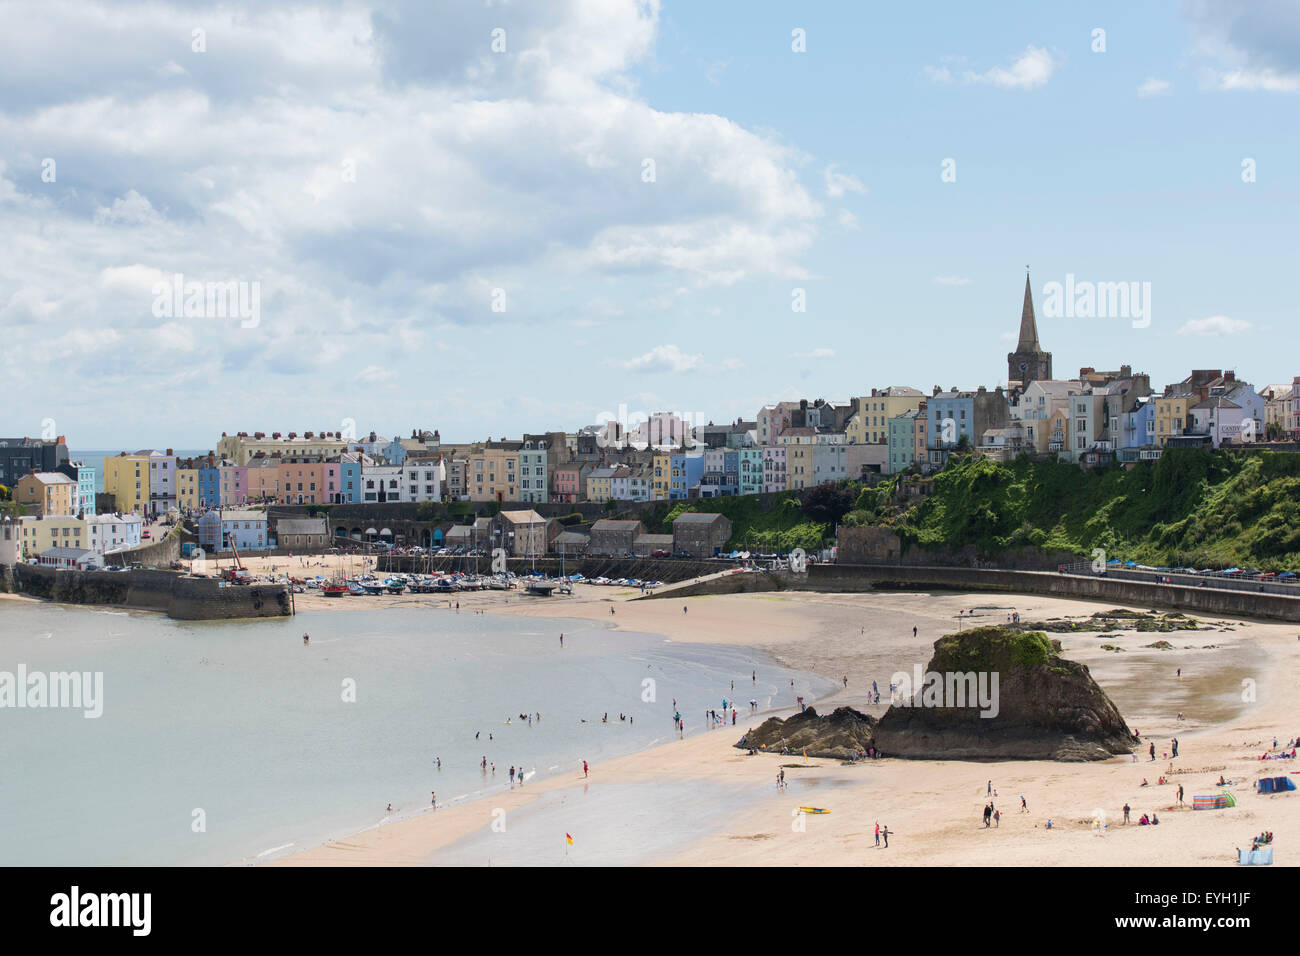 Colourful houses at Tenby Harbour in west Wales. - Stock Image